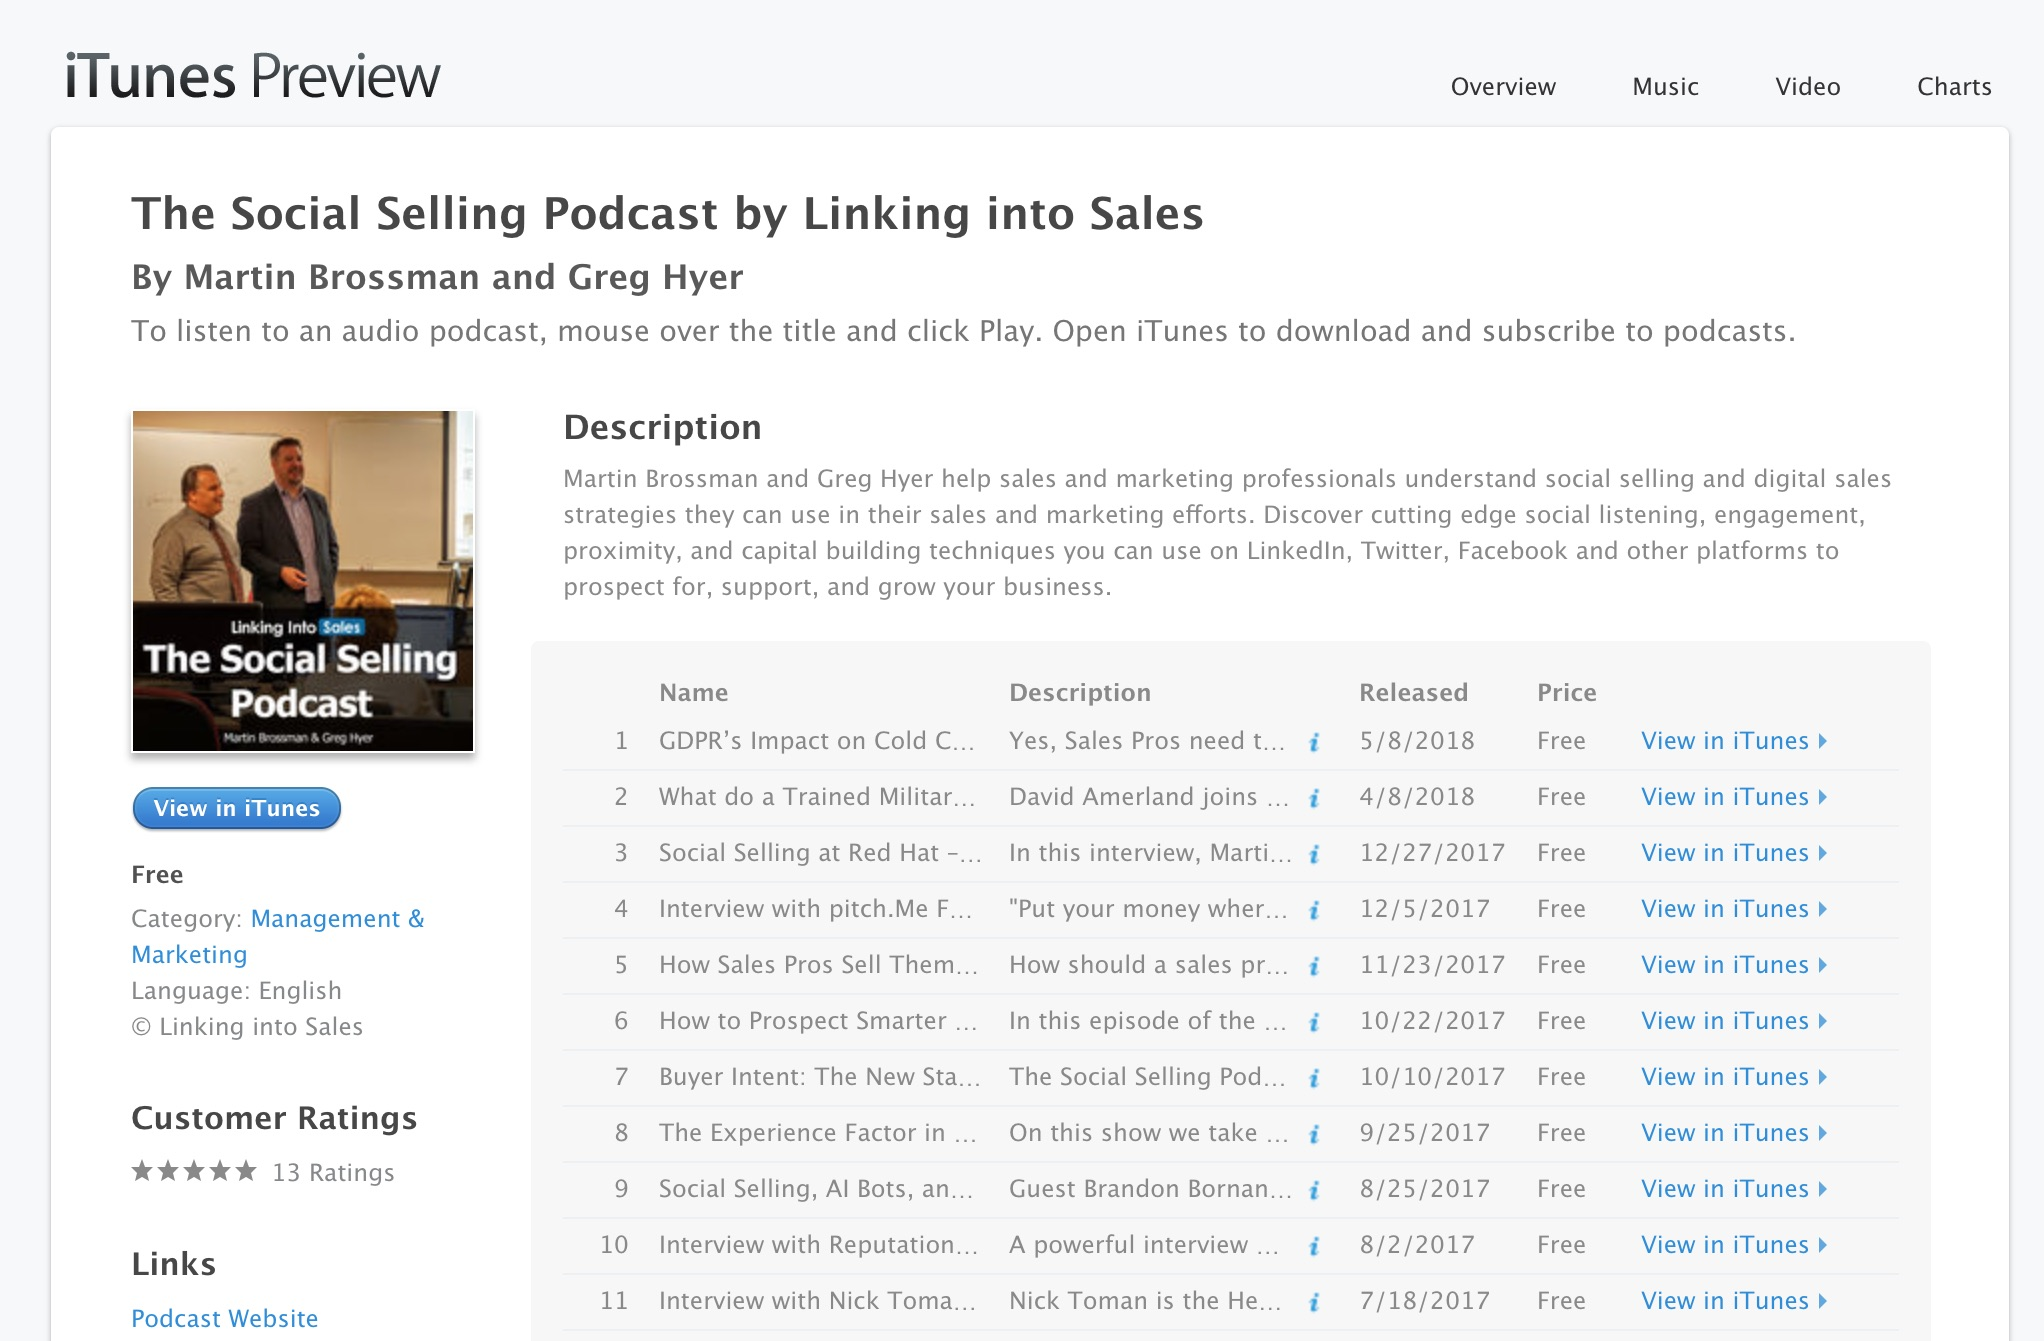 The Social Selling Podcast by Linking into Sales on iTunes